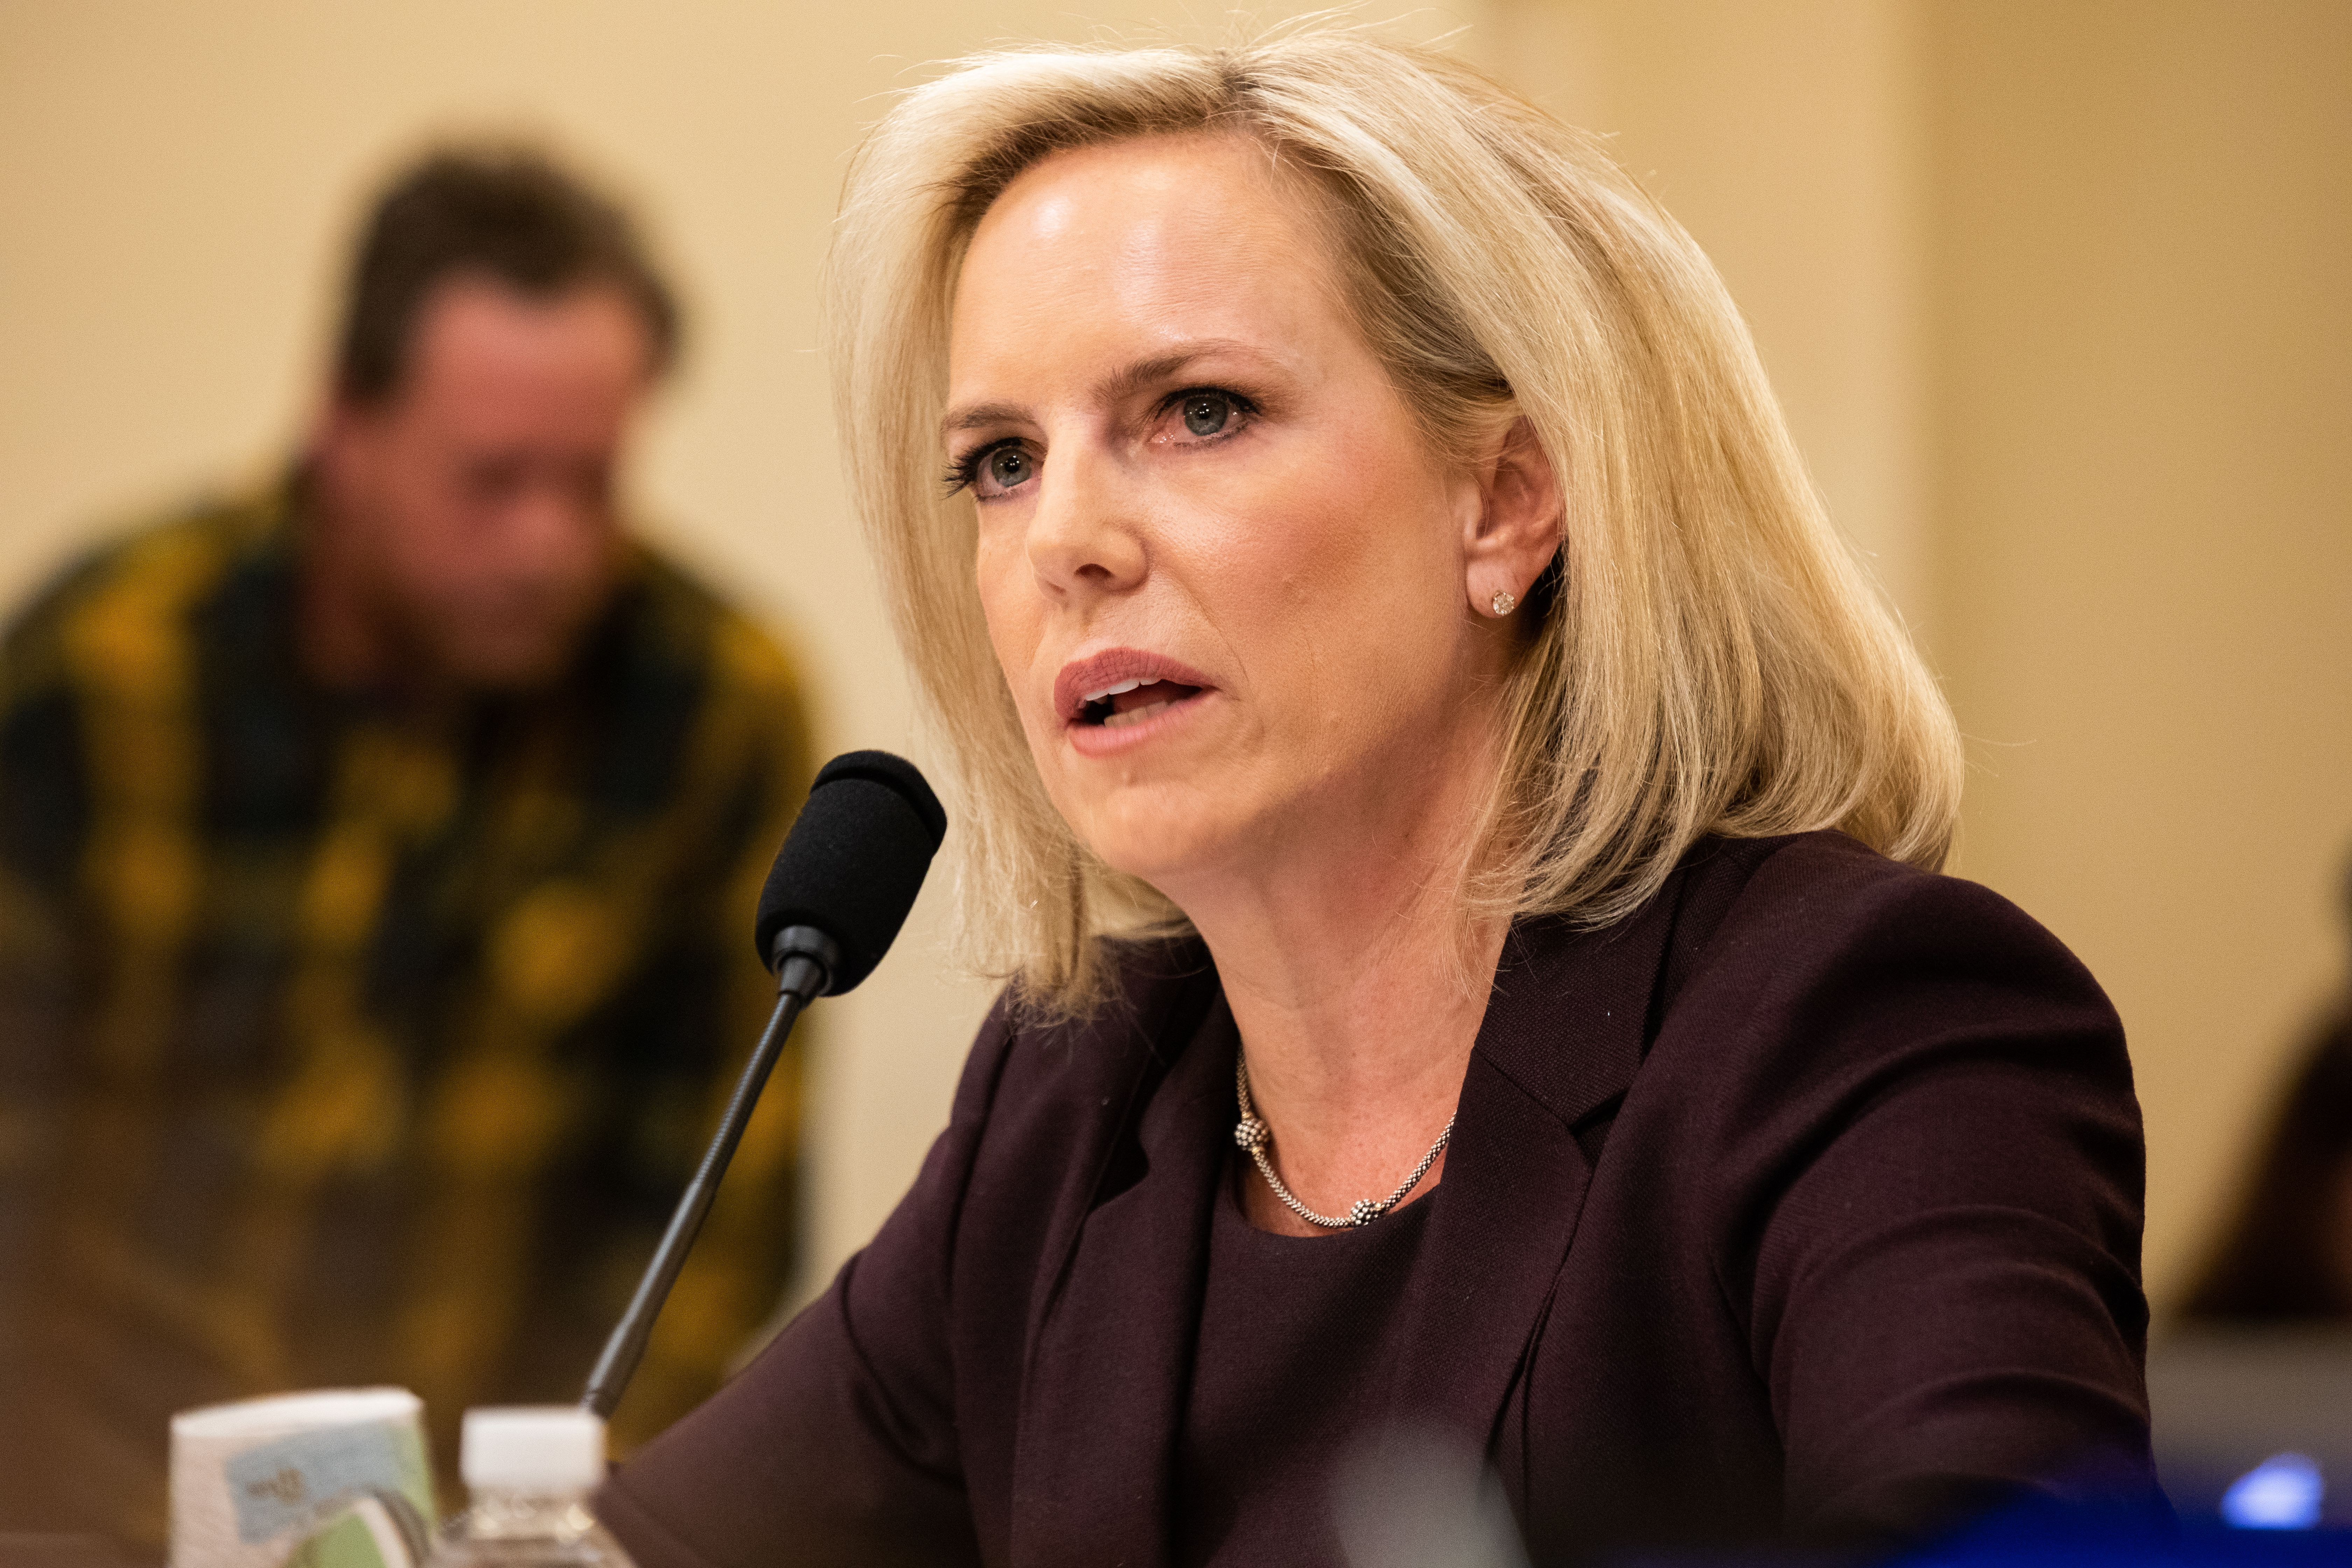 Kirstjen Nielsen halted White House plan for mass family arrests before firing - Axios